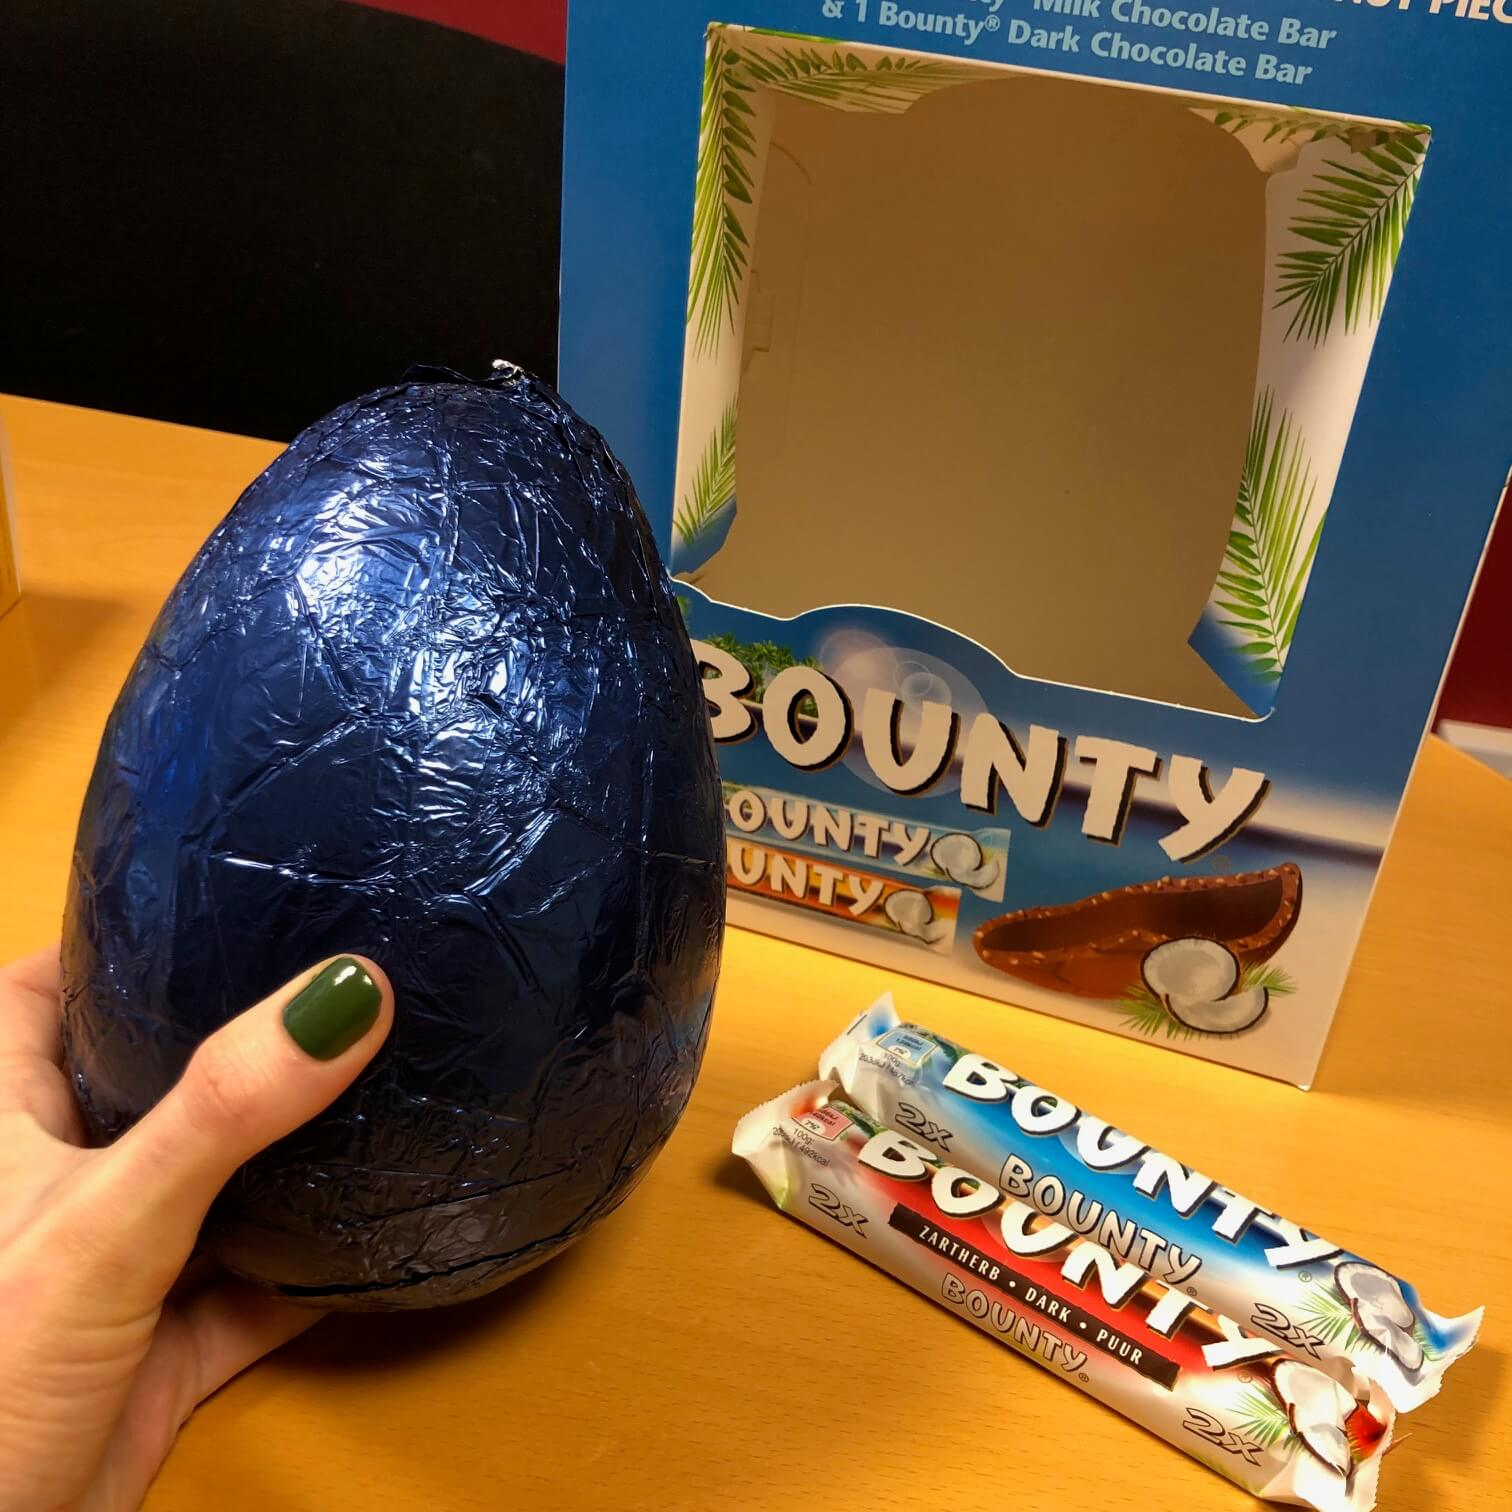 Bounty's chocolate easter egg and chocolate bars.